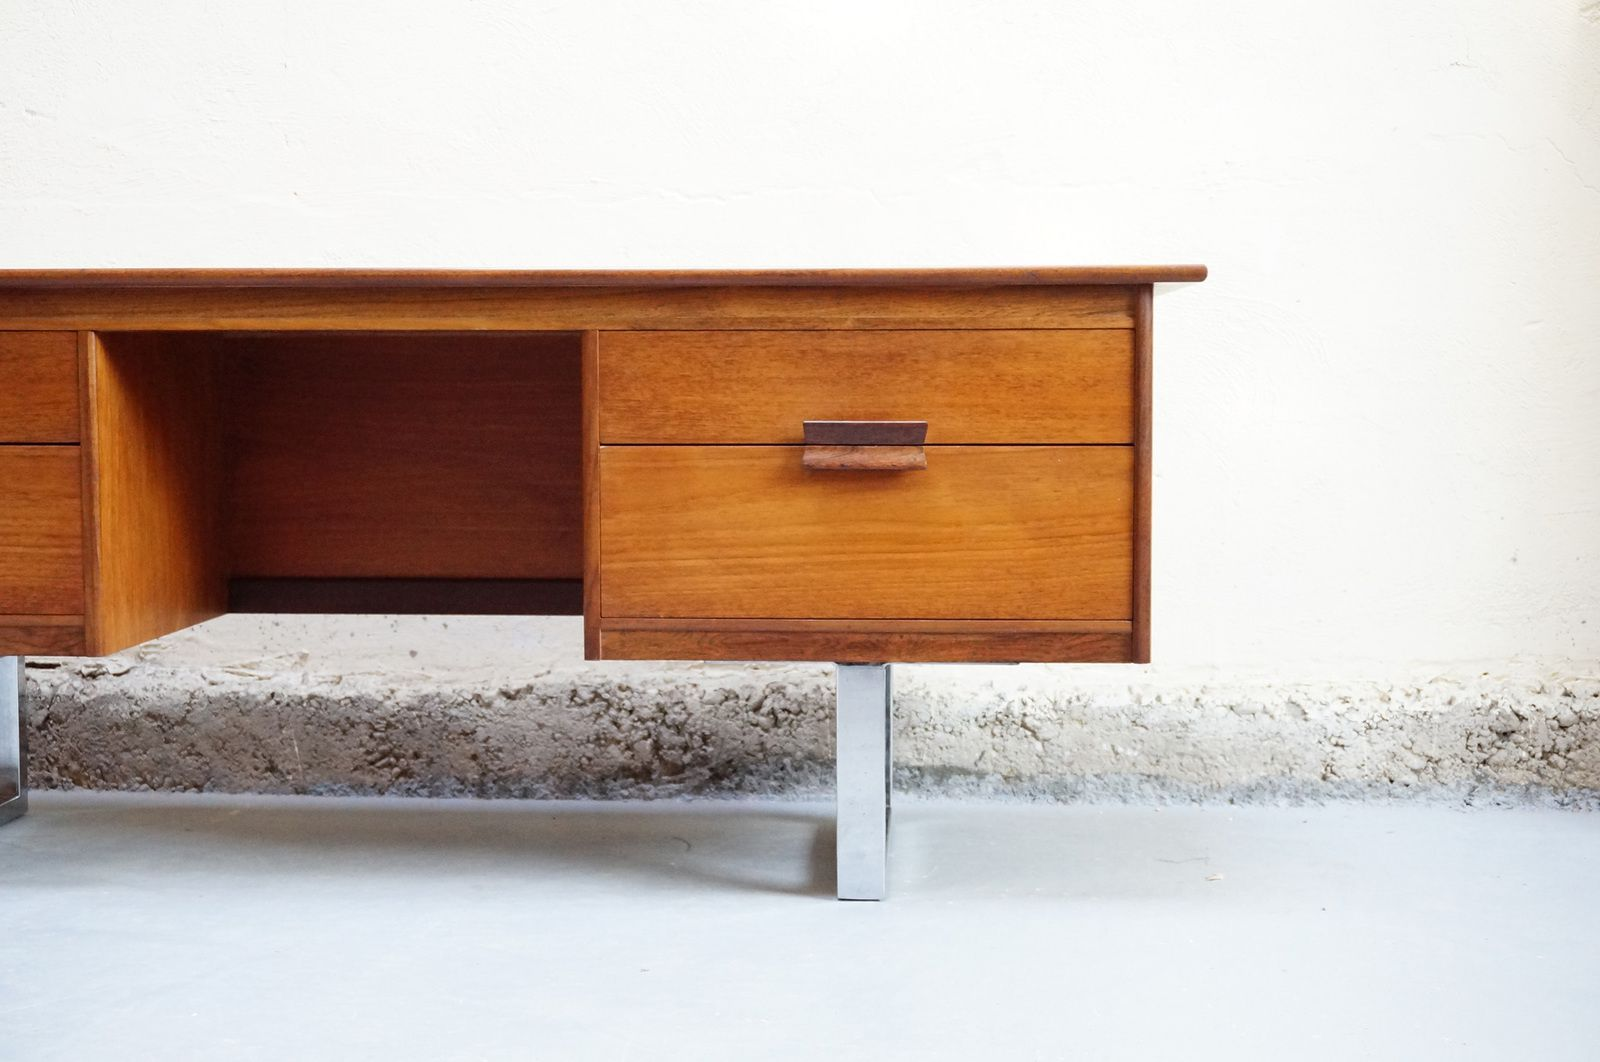 Meuble bas scandinave bureau tele teck annees 50 60 70 vintage design danois mad men bureau - Meuble tele scandinave ...